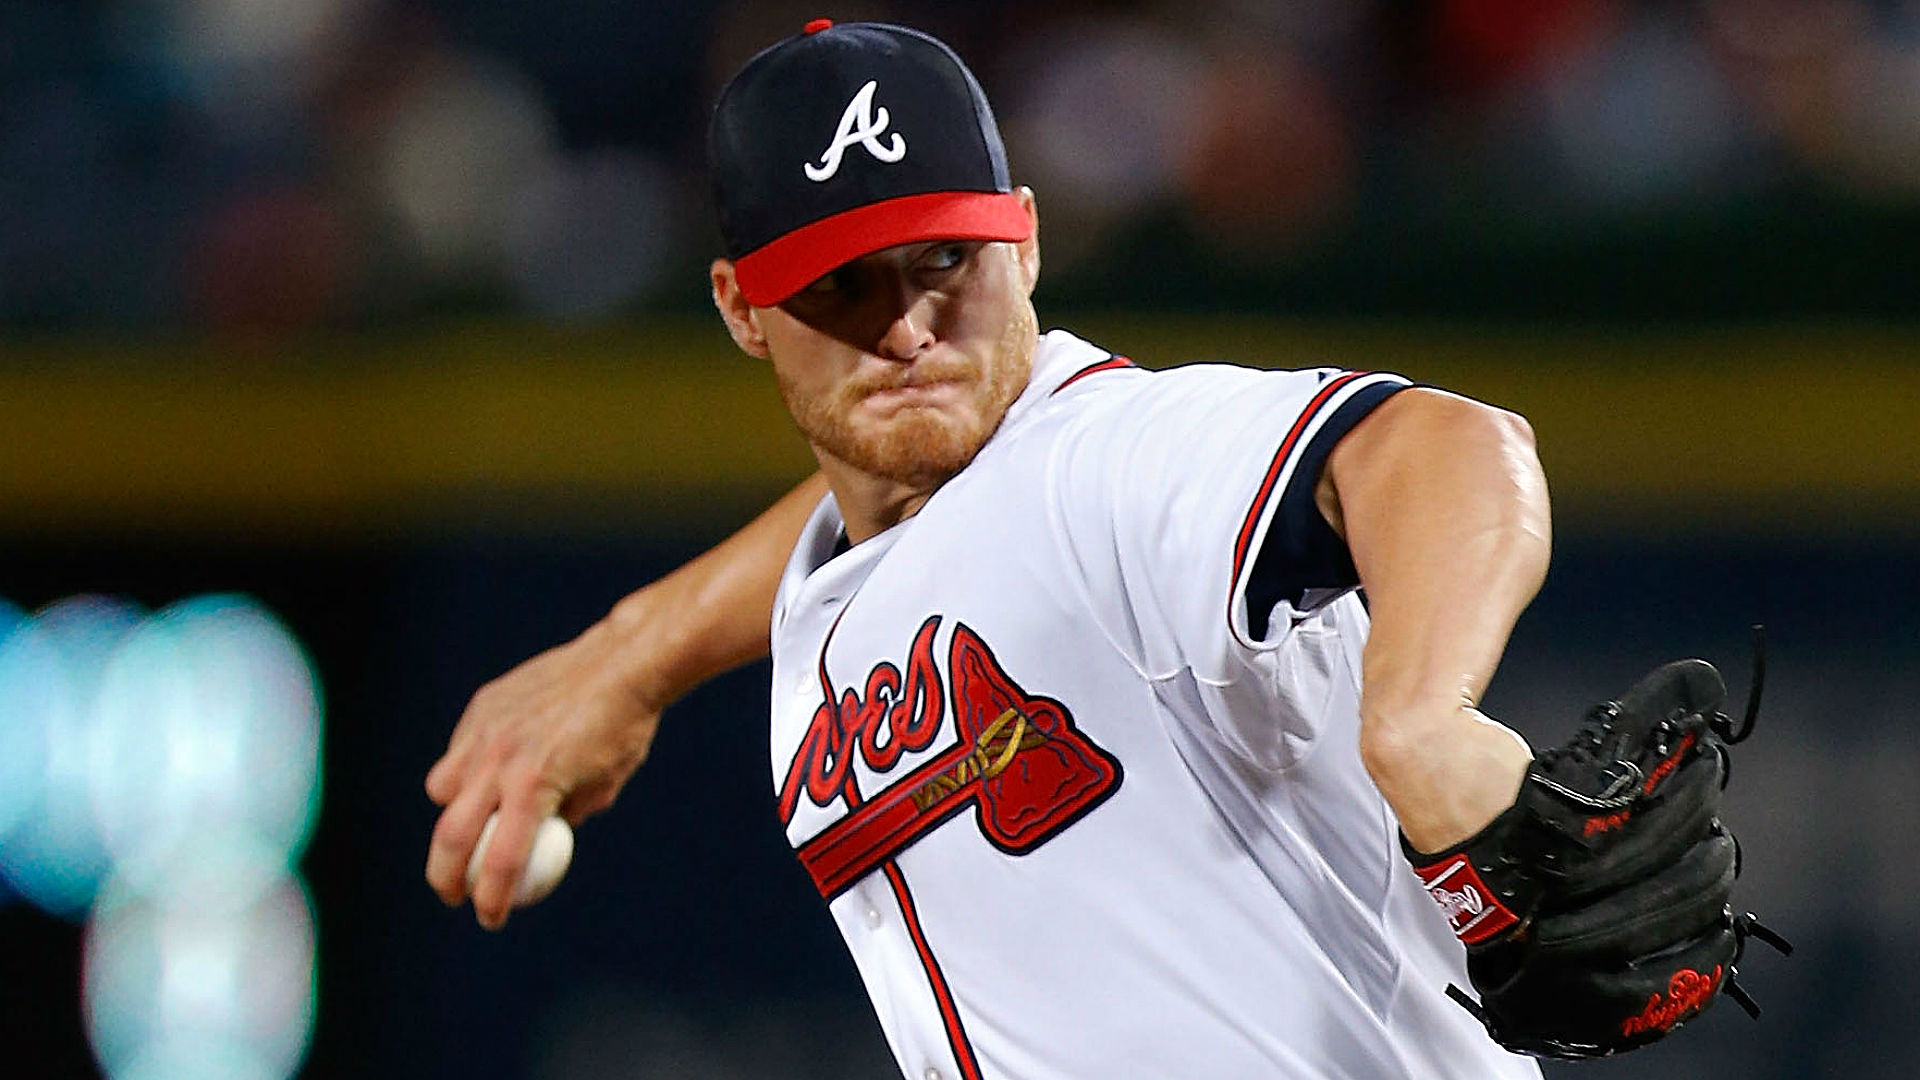 AccuScore' MLB picks of the day – Braves look to Shelby Miller to end skid